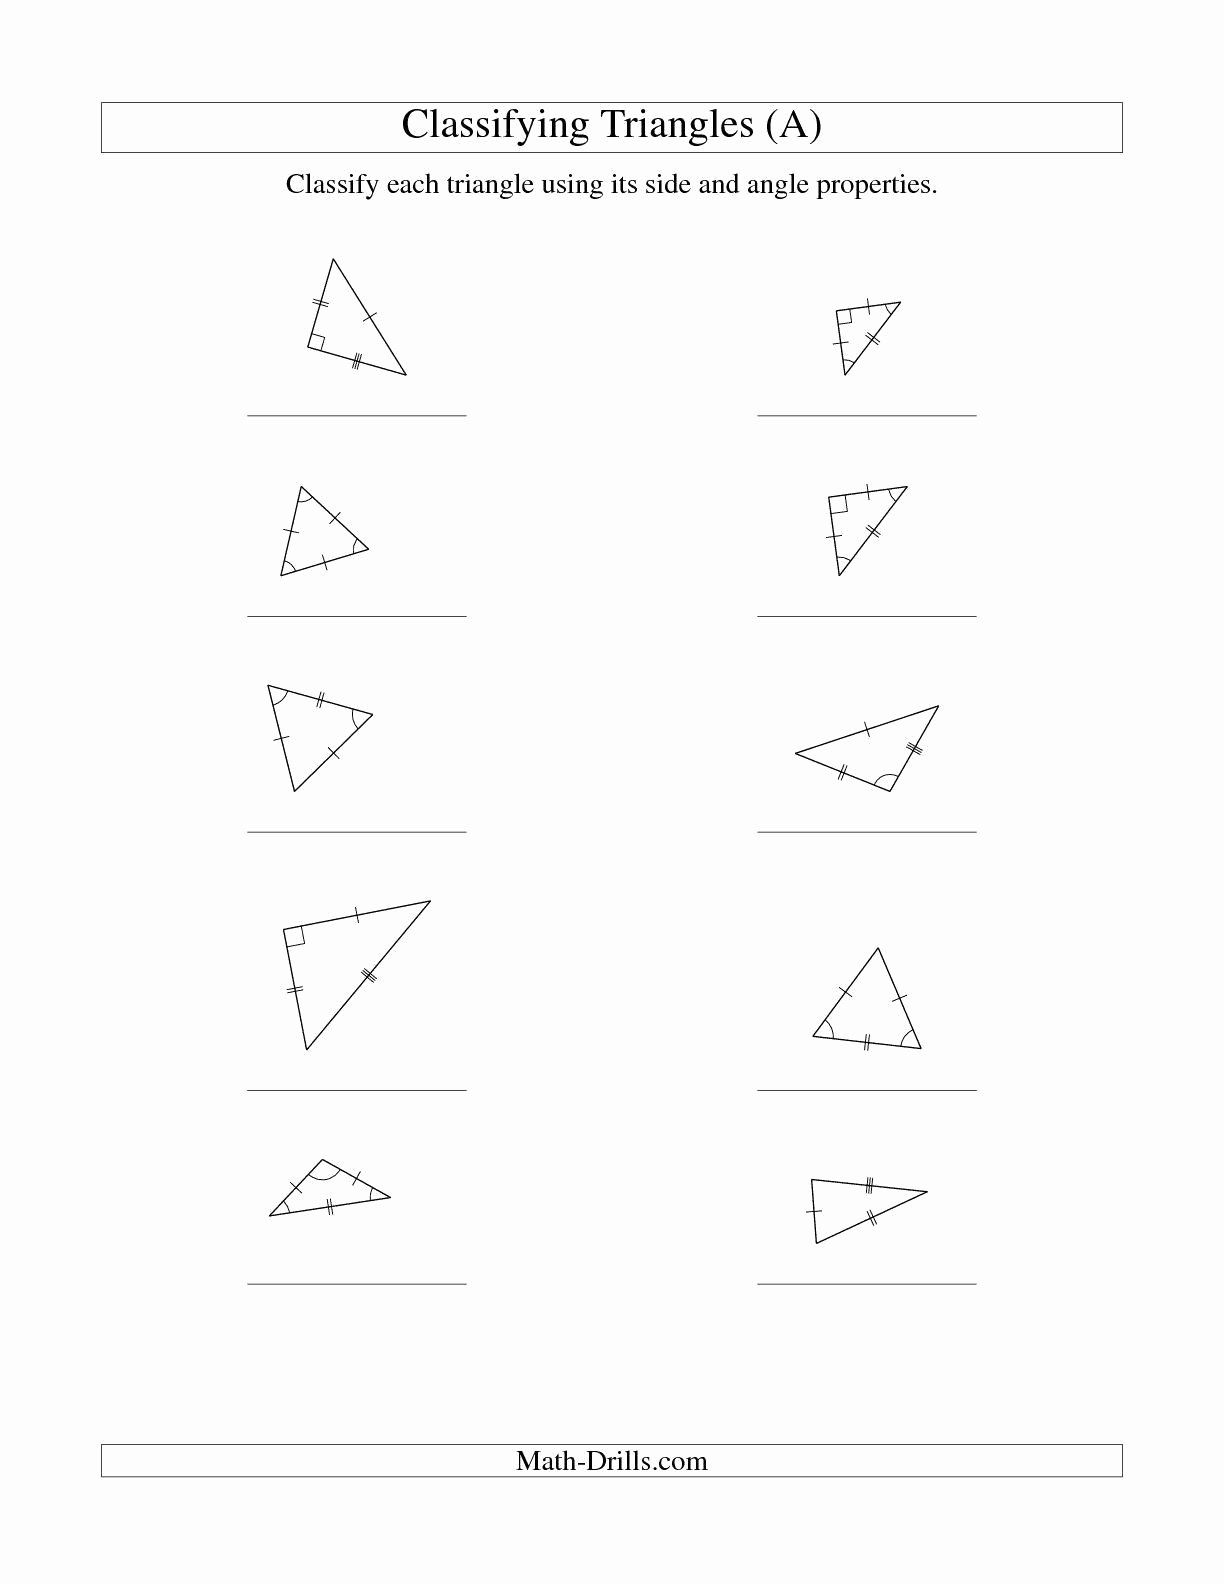 50 Exterior Angle Theorem Worksheet In